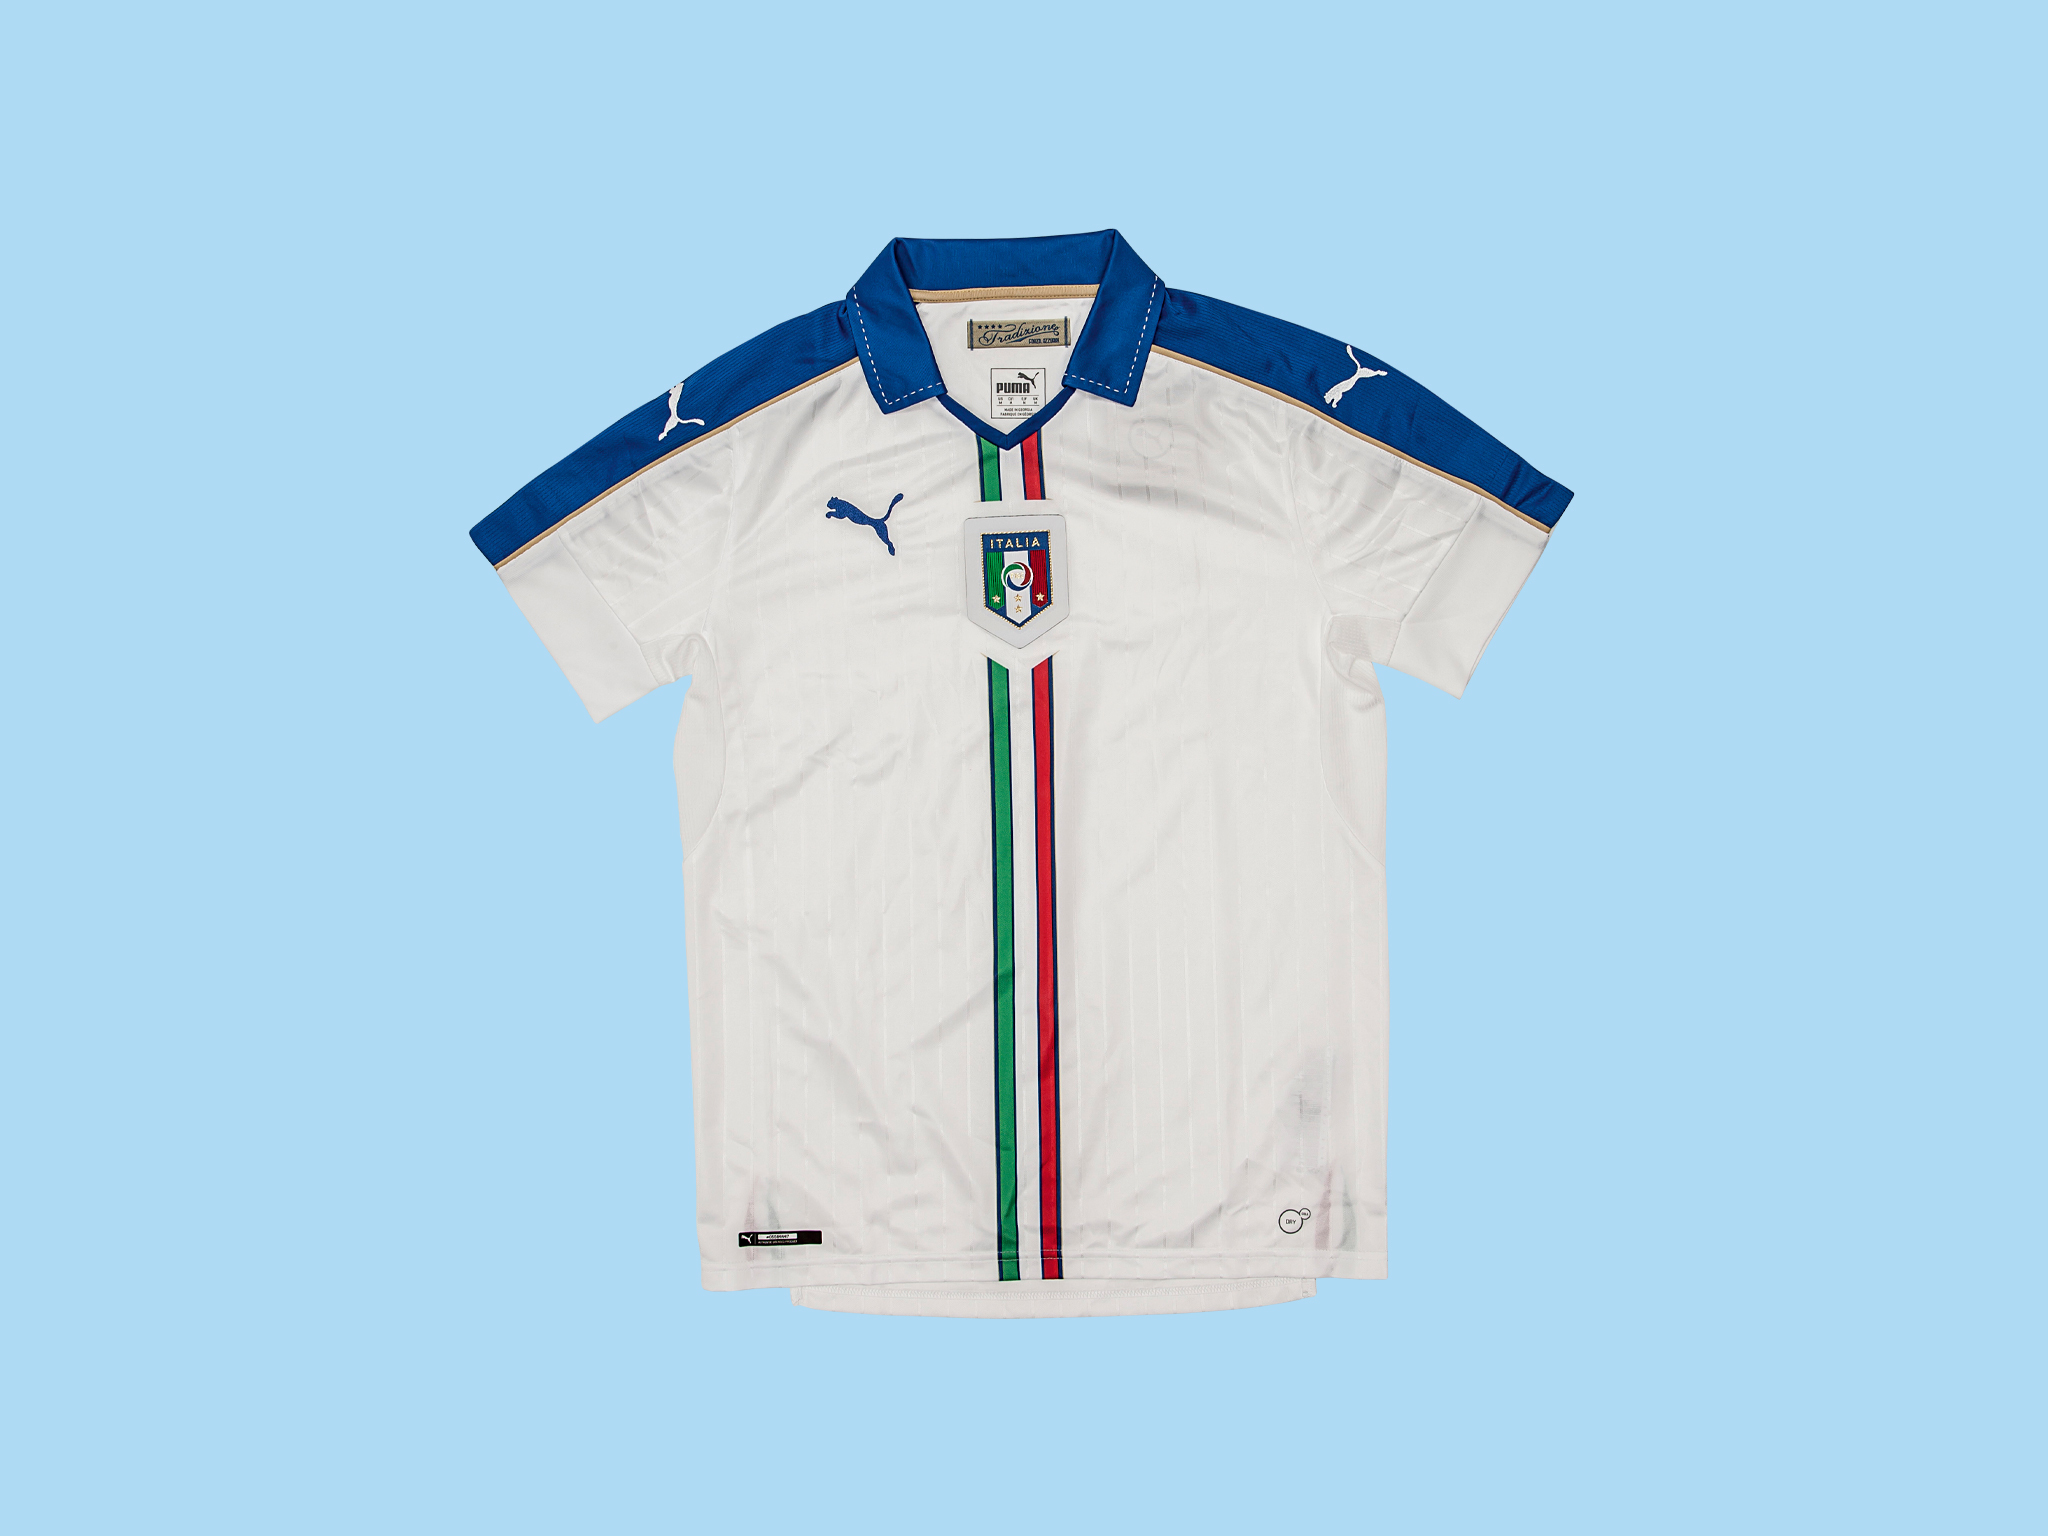 Christmas gift guide: sports - Italy 2015 / 2016 away shirt by Puma